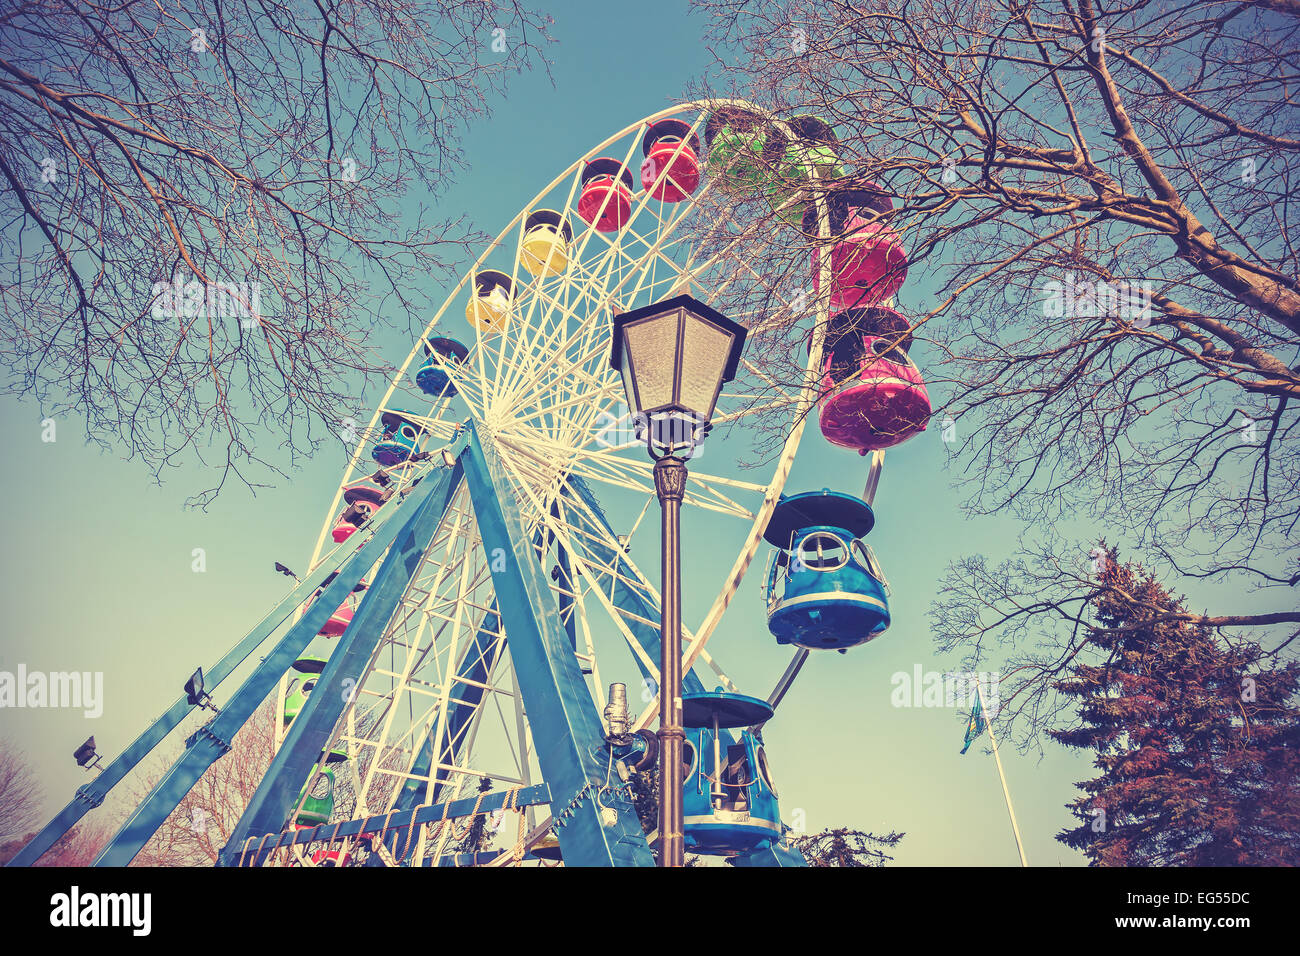 Retro filtered picture of ferris wheel in a park. Stock Photo